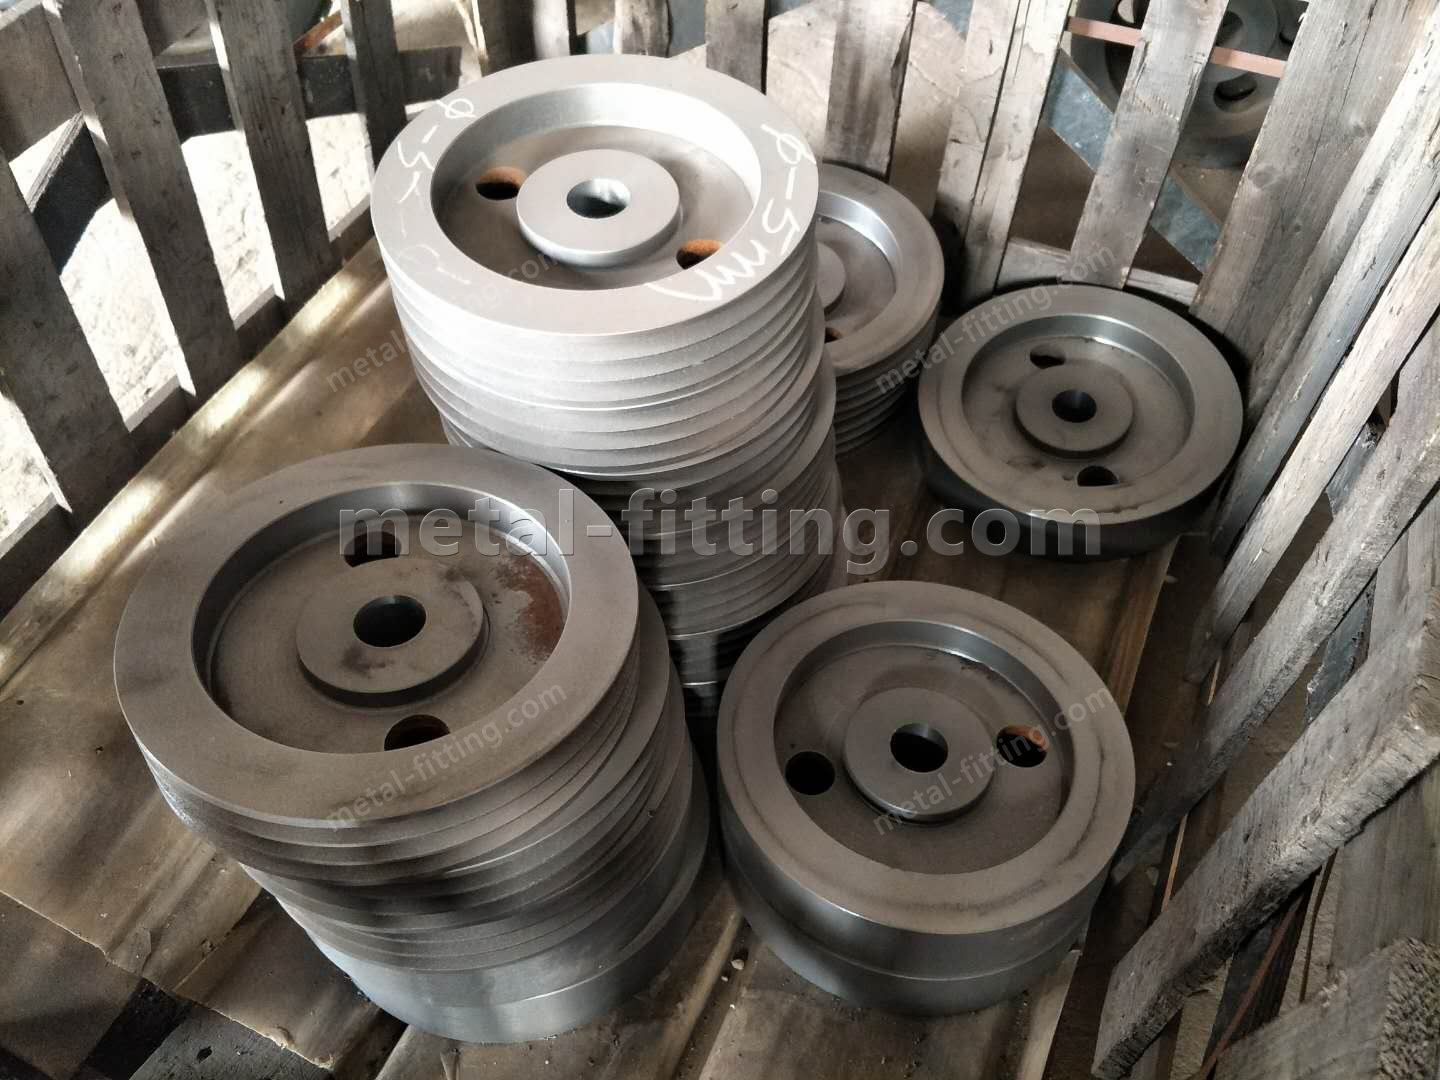 Casted Gear Ring,cast iron pully for cement Mixer-419545062536830546